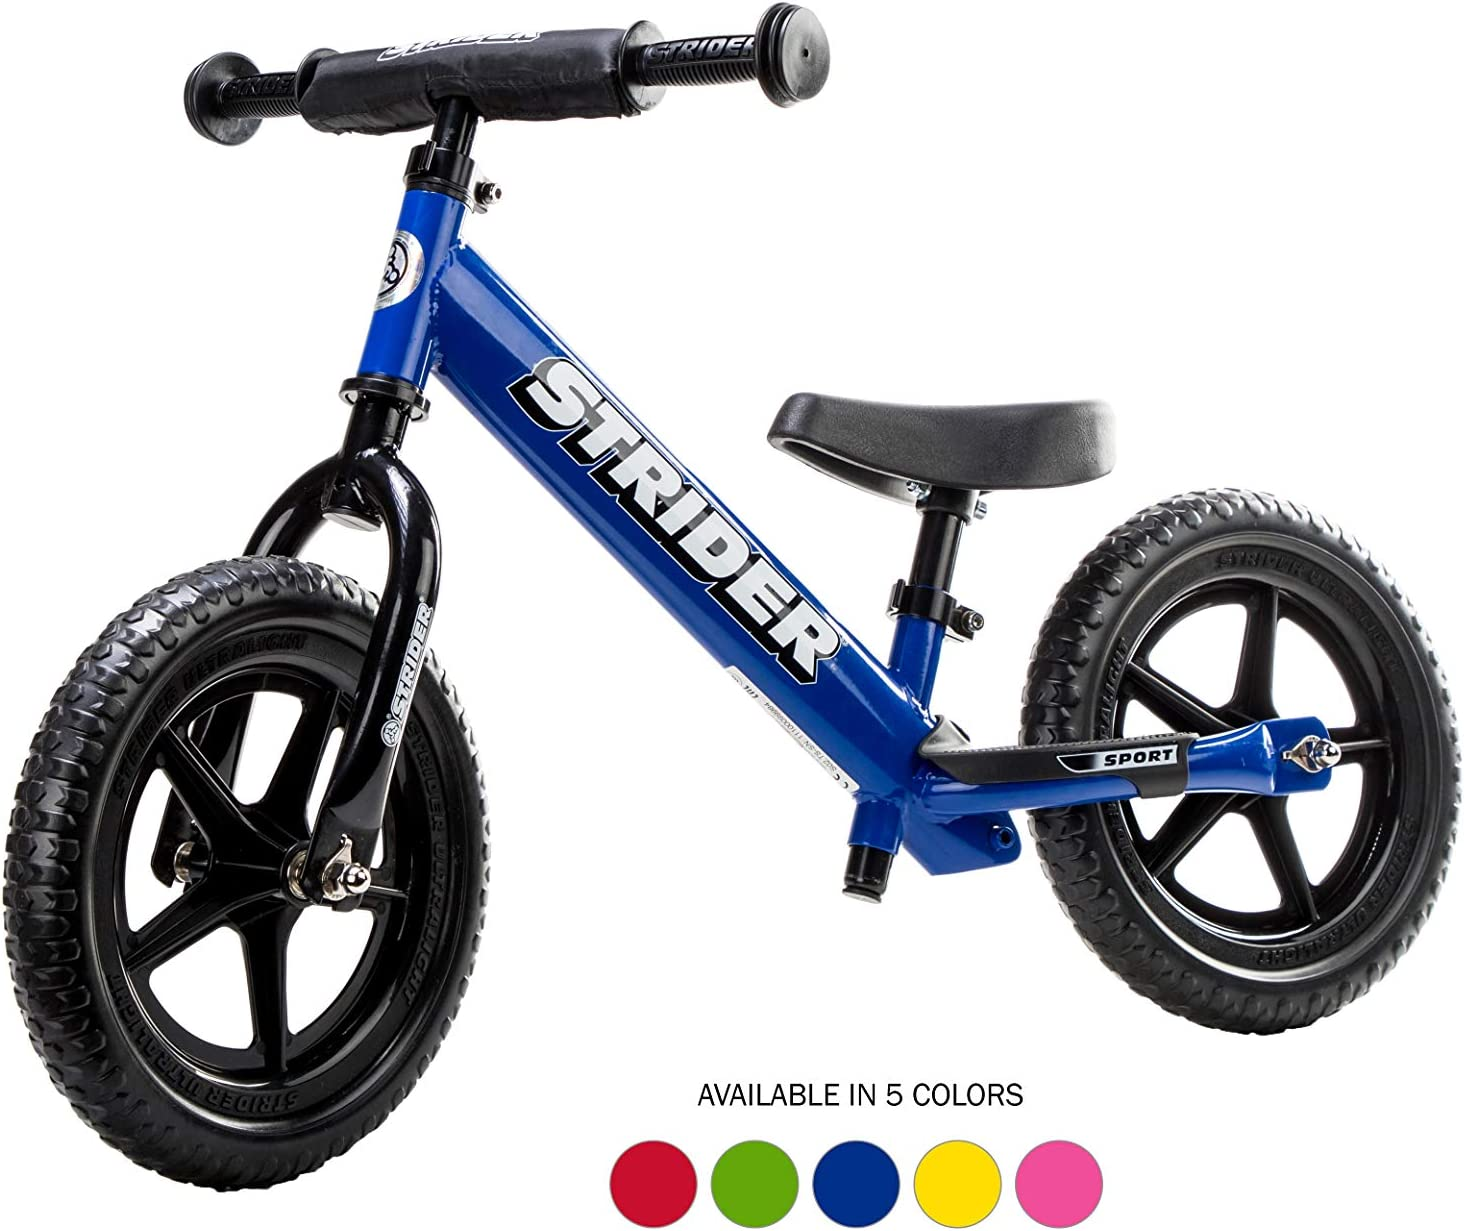 Top 10 Best Balance Bikes For Toddlers 2020 Reviews 1